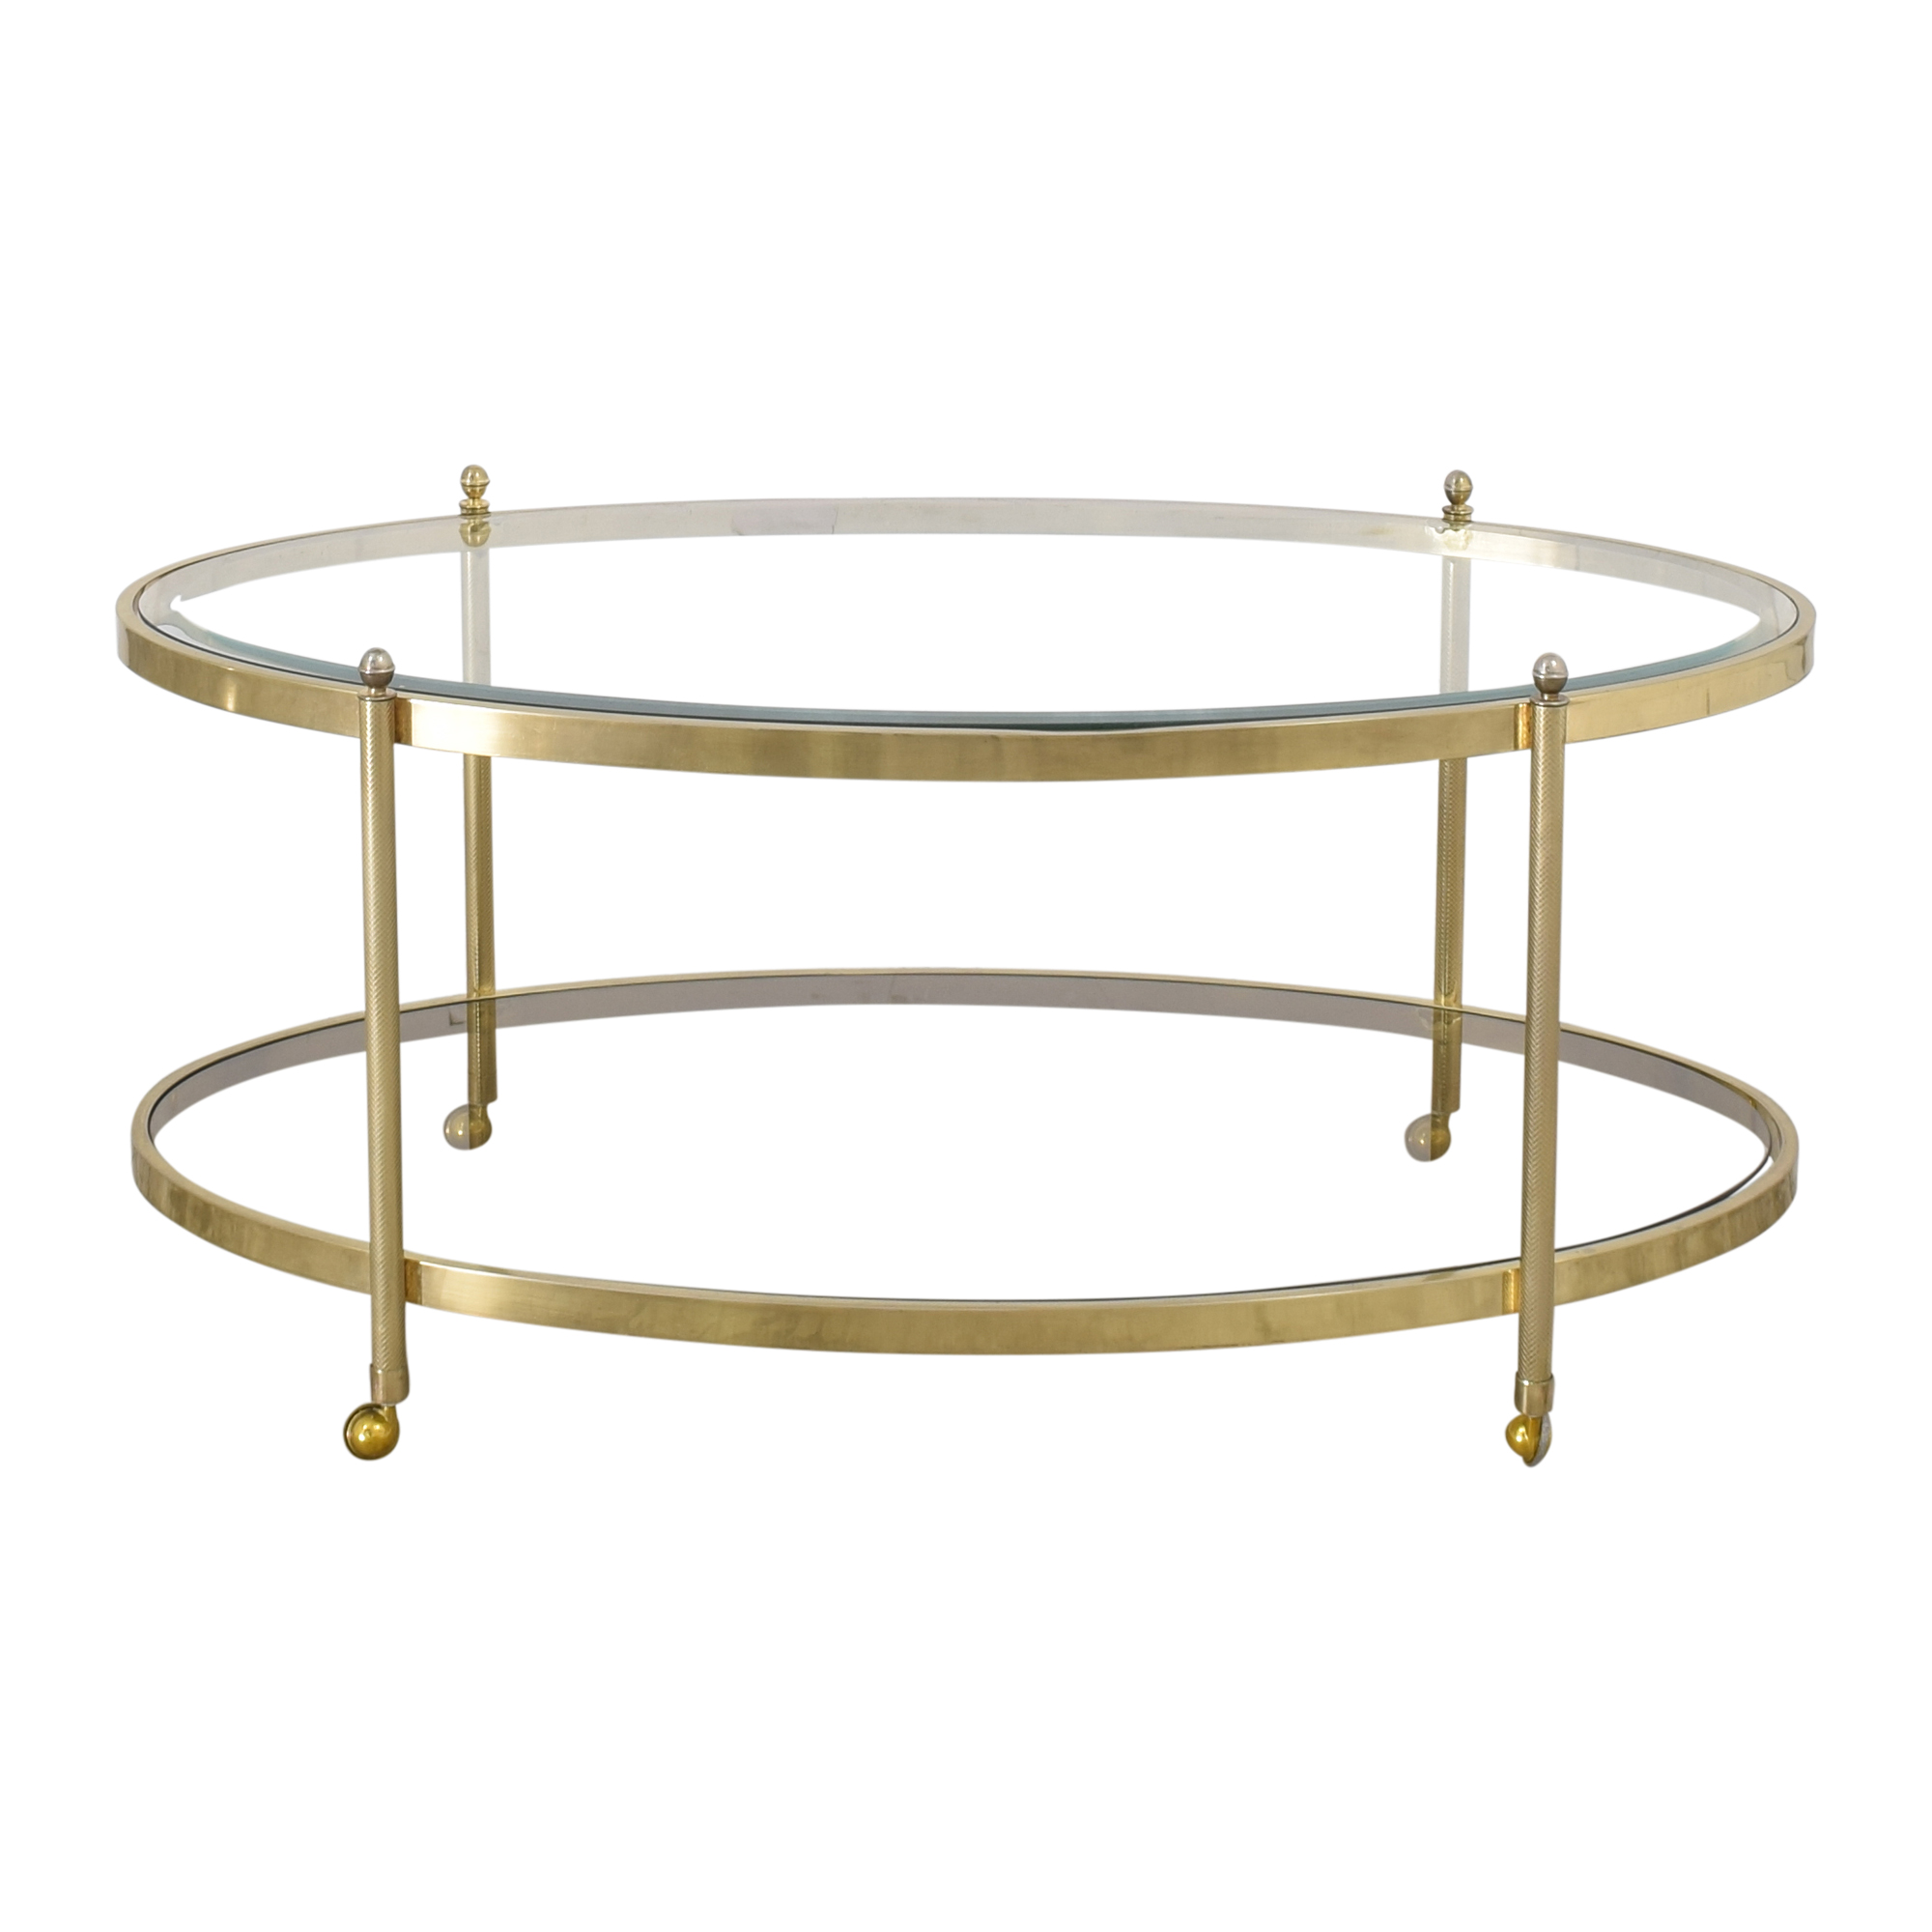 Oval Glass Top Coffee Table with Casters